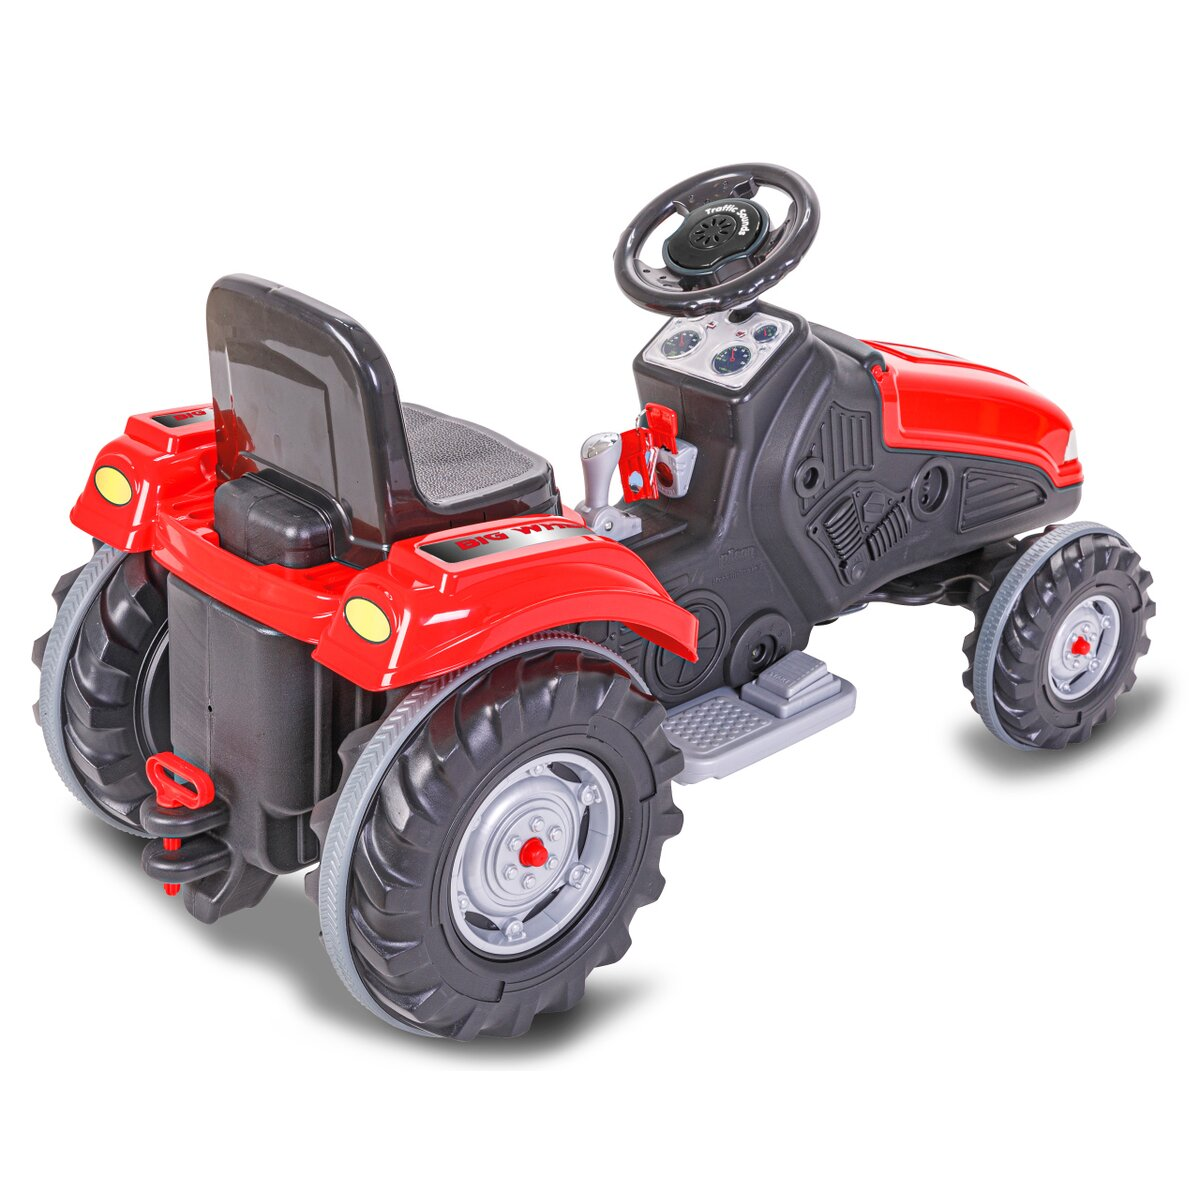 Jamara Ride-on Traktor Big Wheel 12V červený